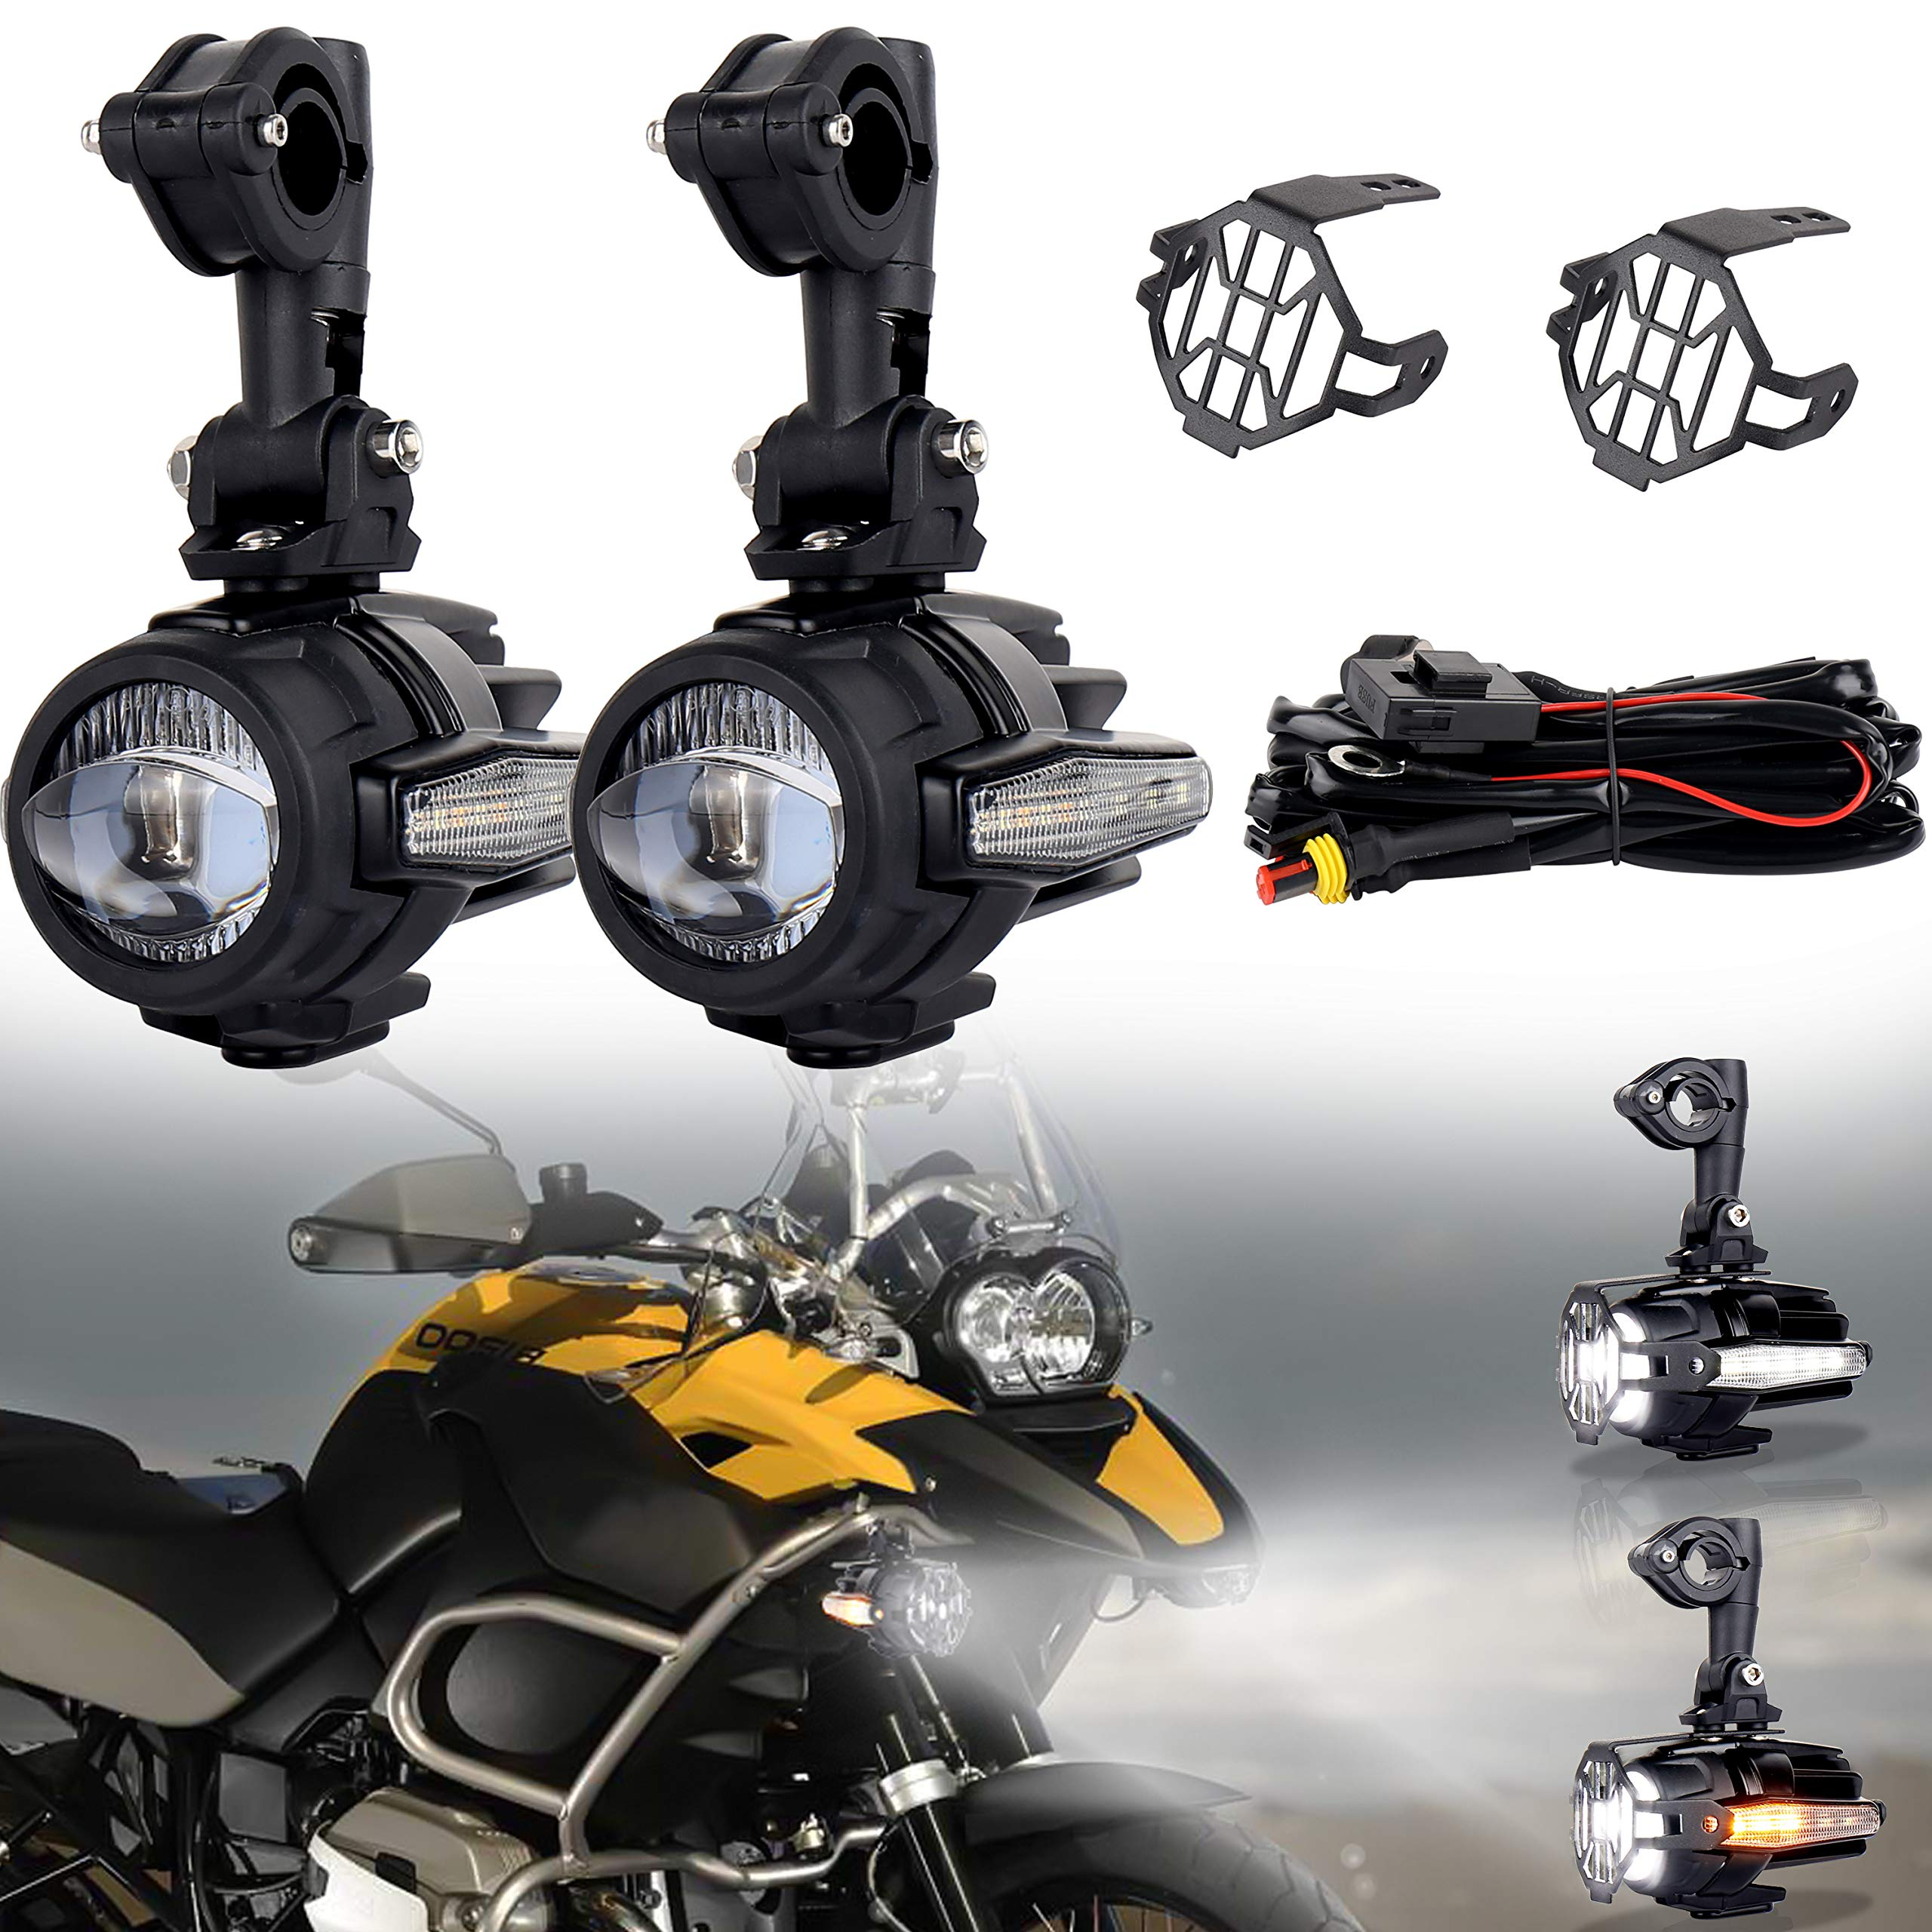 OVOTOR Motorcycle LED Auxiliary Lights 40W 3000LM Spot Driving Fog Light with DRL Turn Signal for Universal BMW Honda Harley Motorcycle Bar Fits R1200GS F800GS K1600 KTM 2PCS by OVOTOR